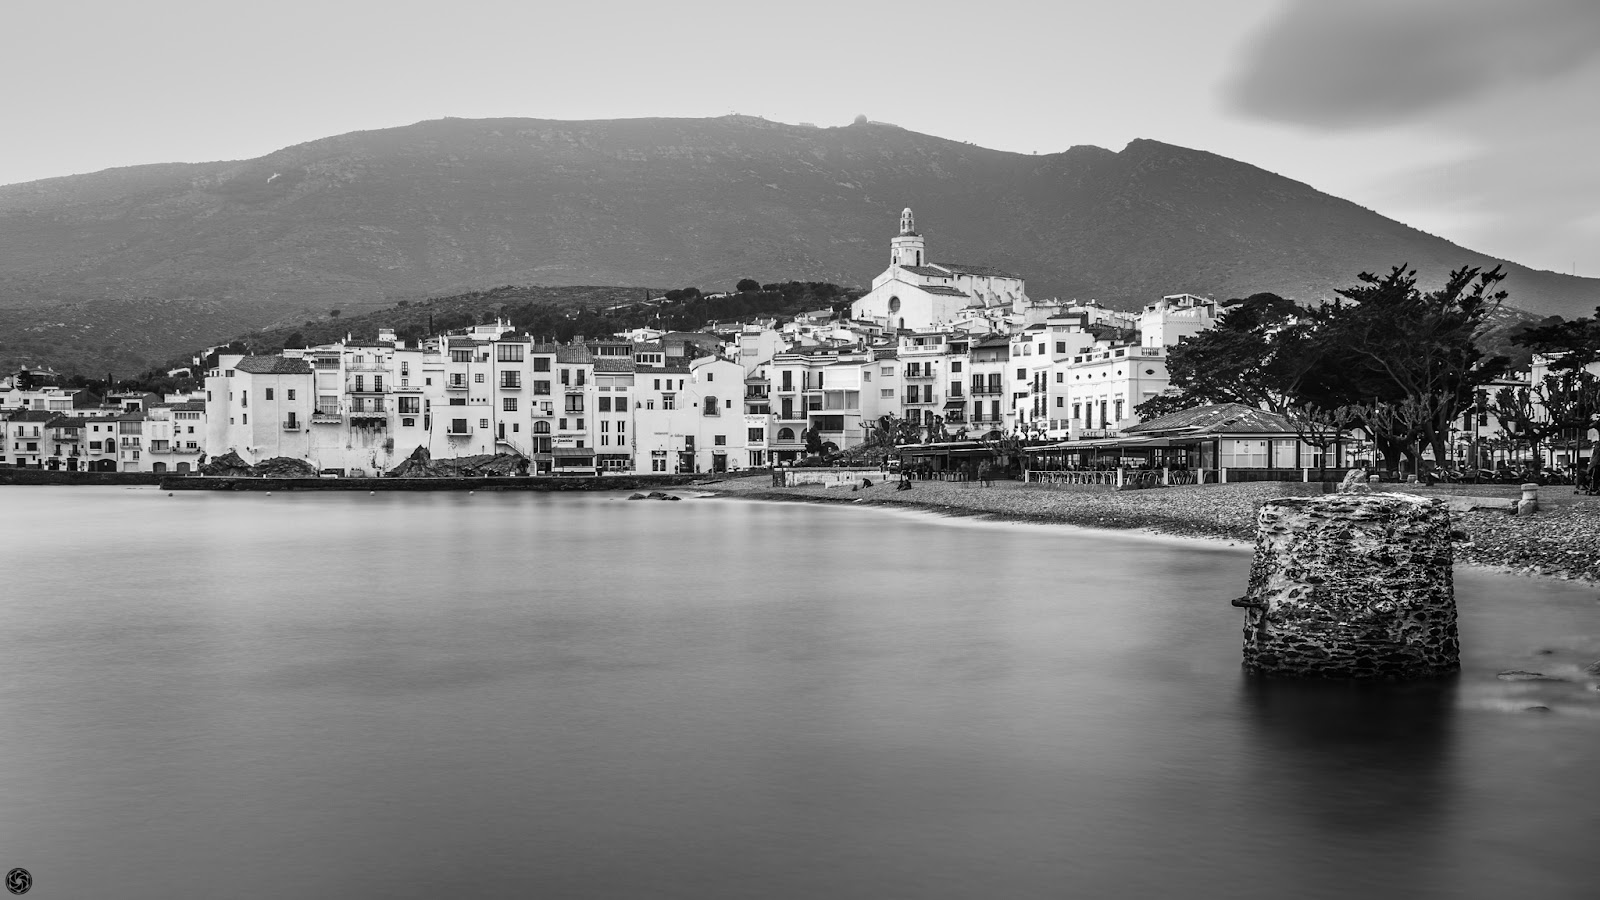 Cadaqués :: Canon EOS5D MkIII | ISO100 | Canon 24-105@40mm | f/8.0 | 1/60s (ND400 + ND8)